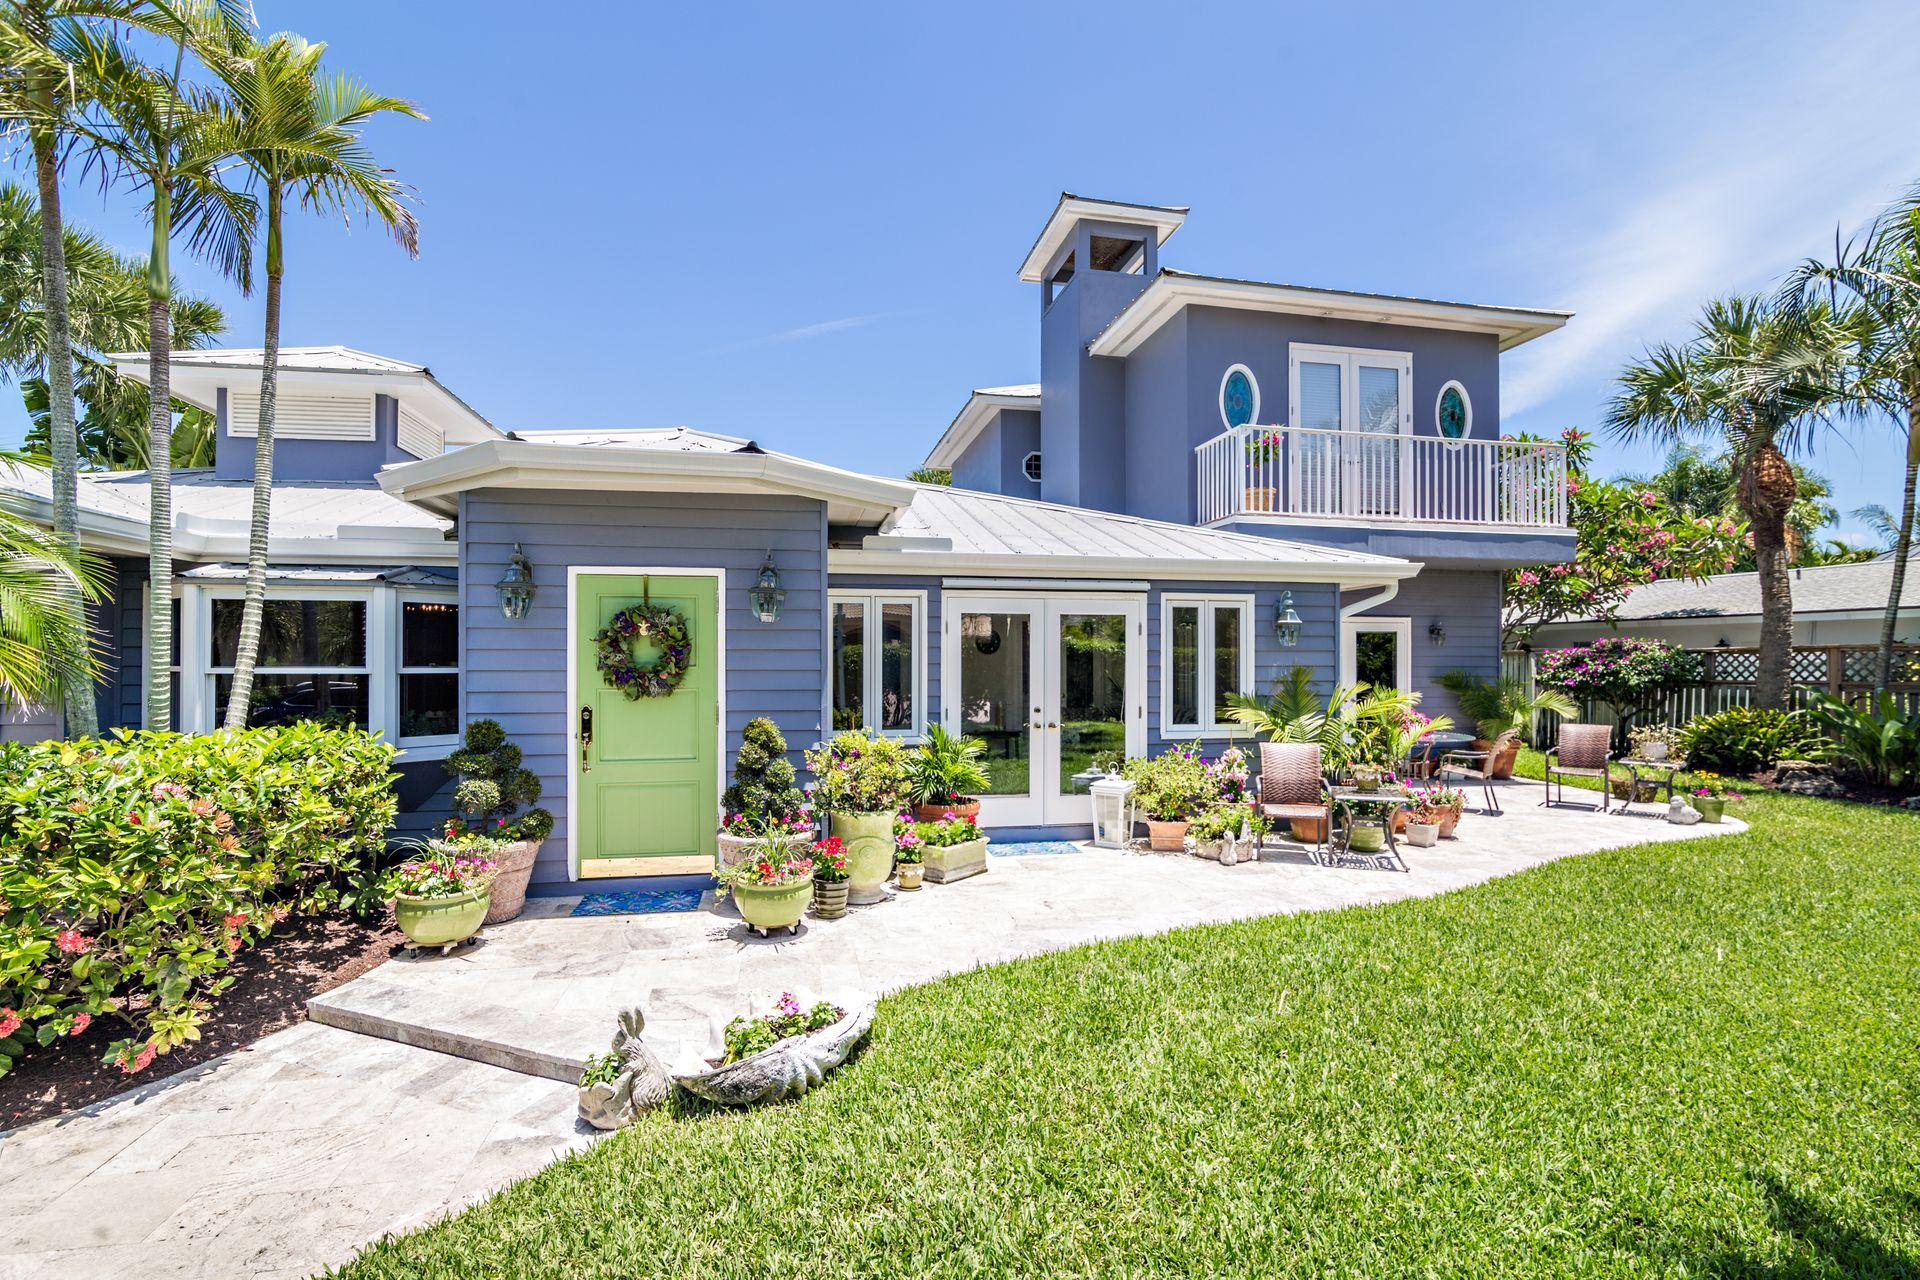 New Home for sale at 122 Lighthouse Drive in Jupiter Inlet Colony